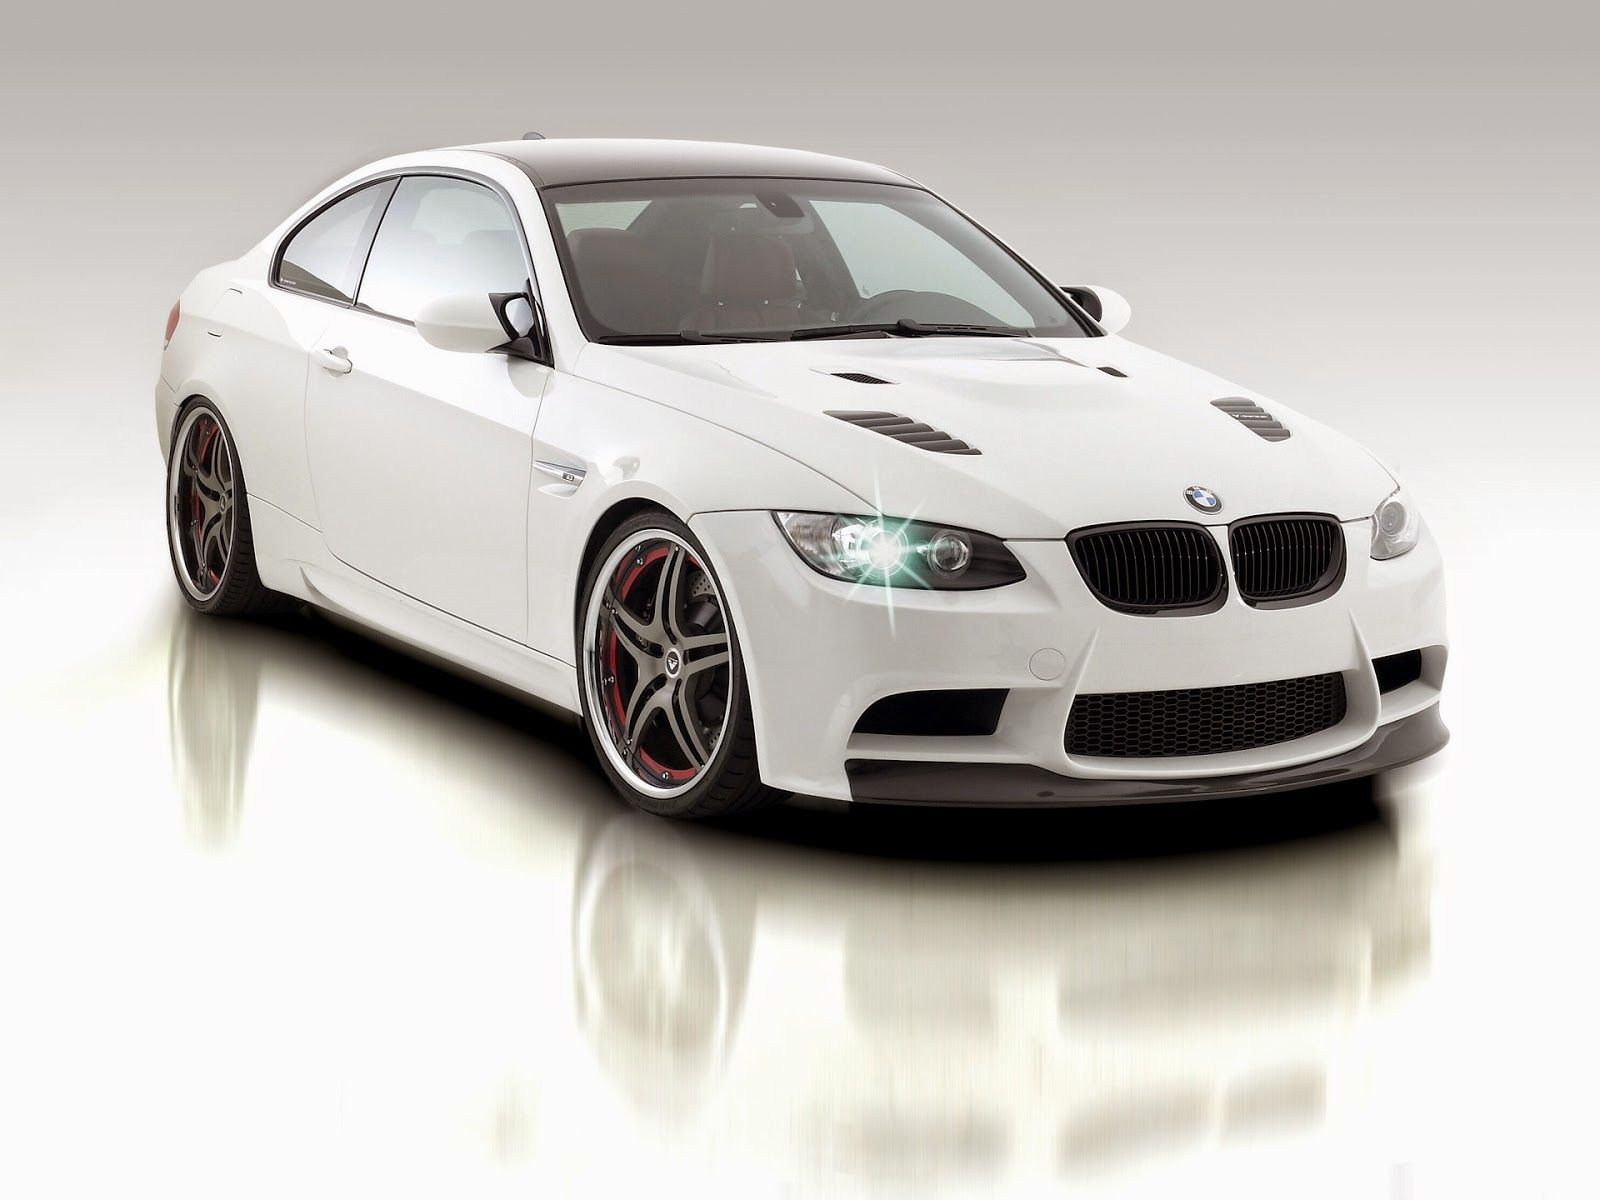 Picture Of 2009 Bmw M3 Hd Pictures Bmw M3 Bmw Bmw Cars